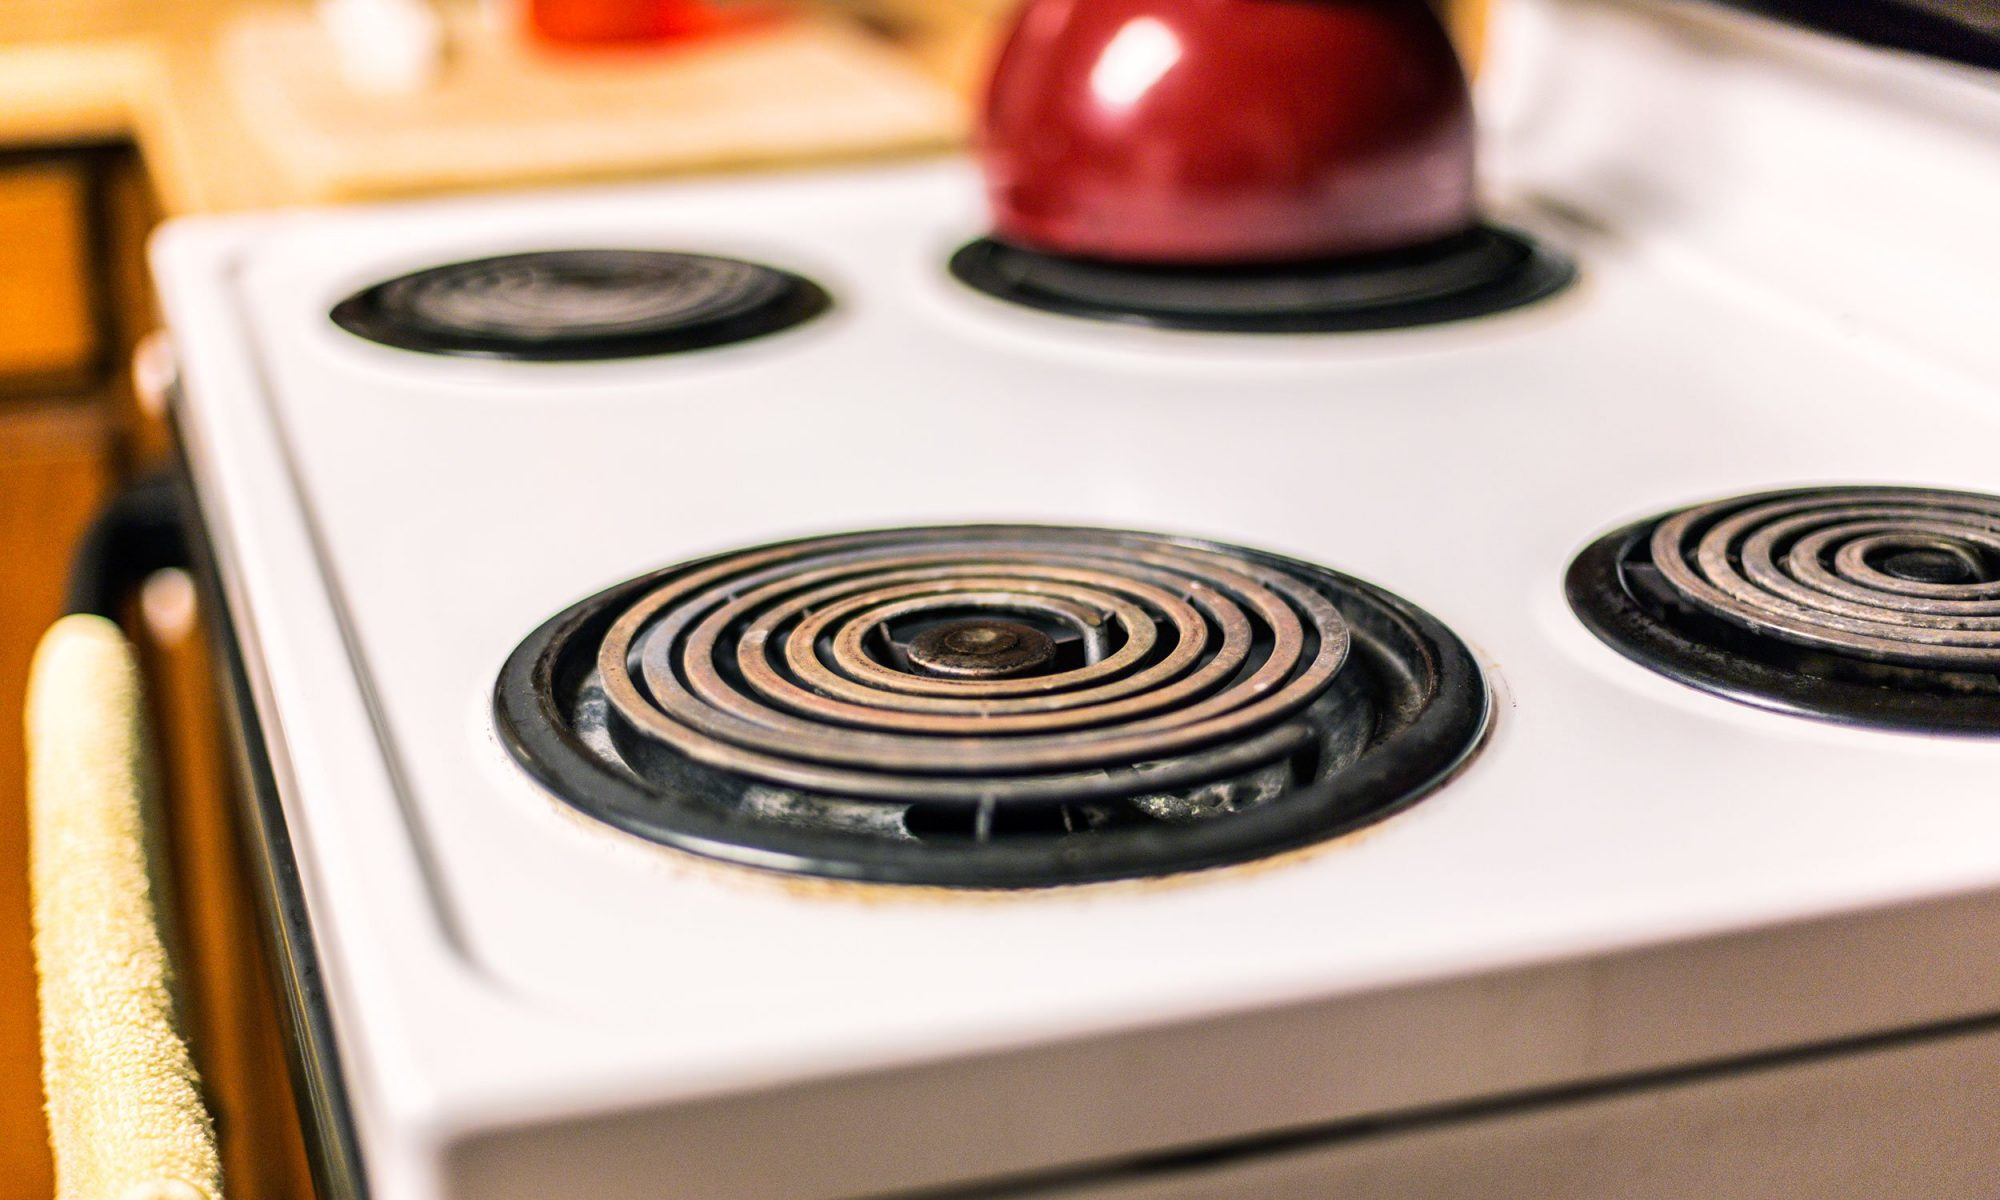 How to Clean an Electric Stove